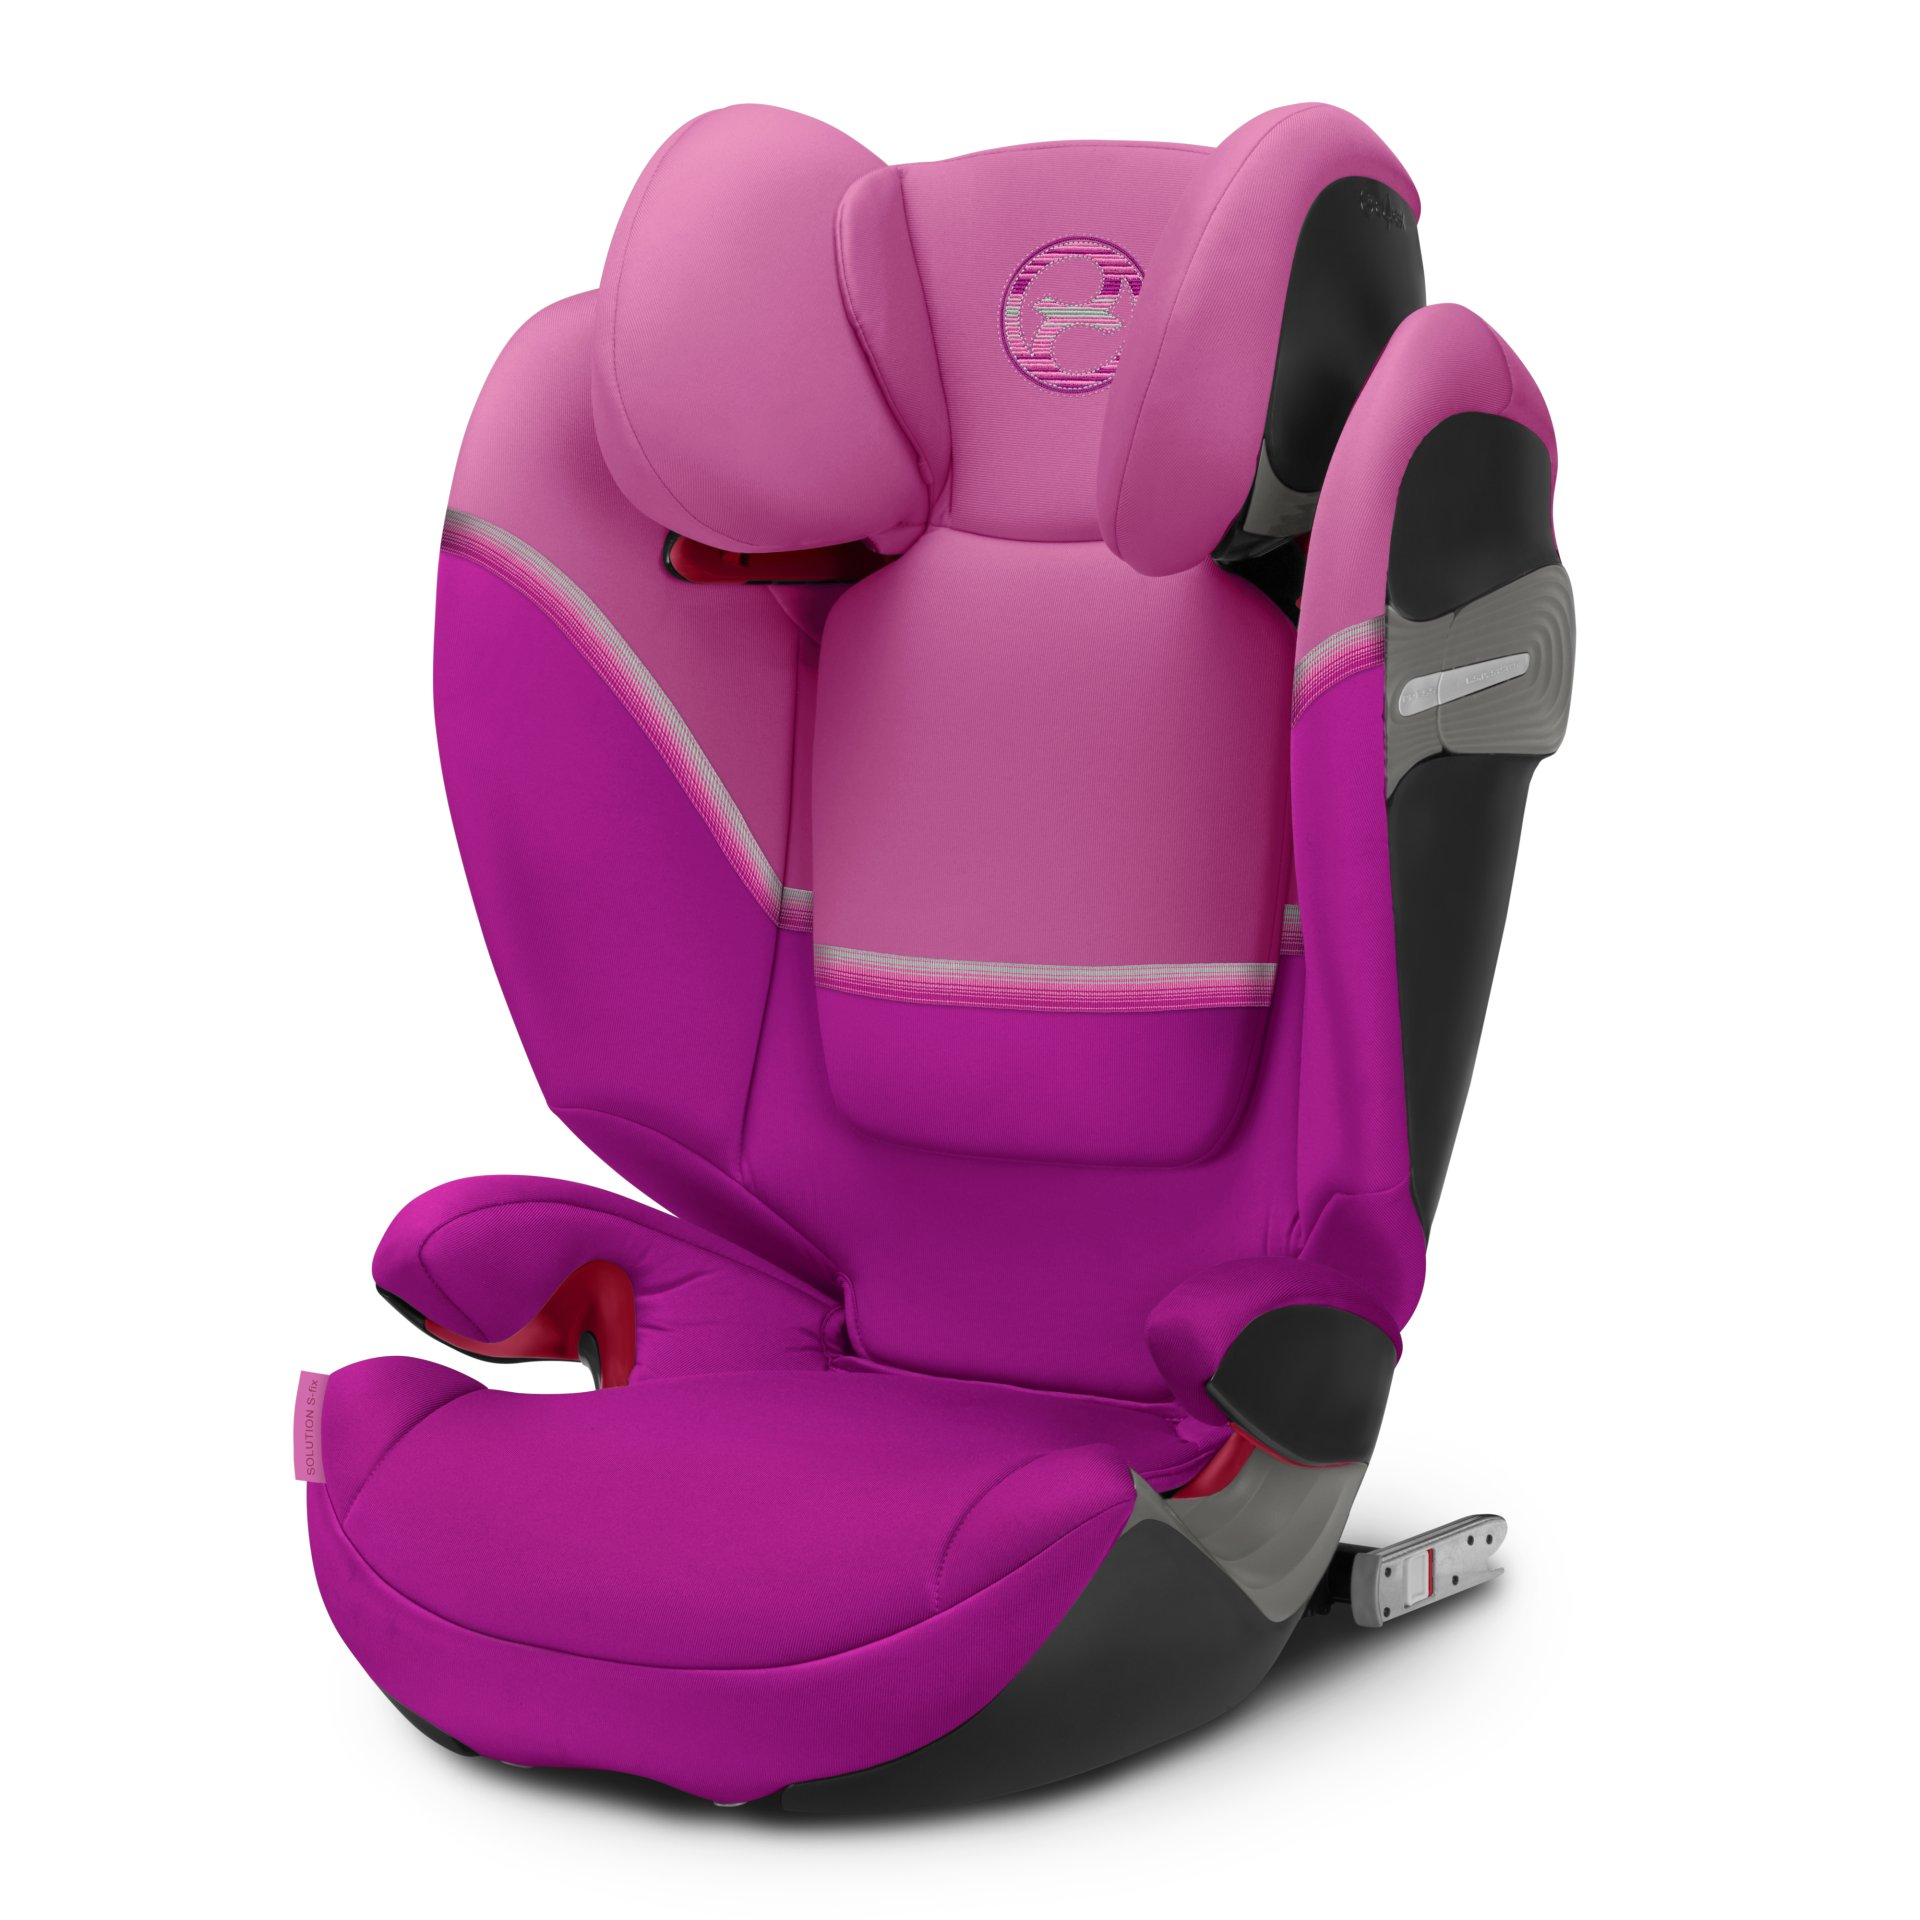 Cybex Child Car Seat Solution S Fix Design Fancy Pink Purple 2019